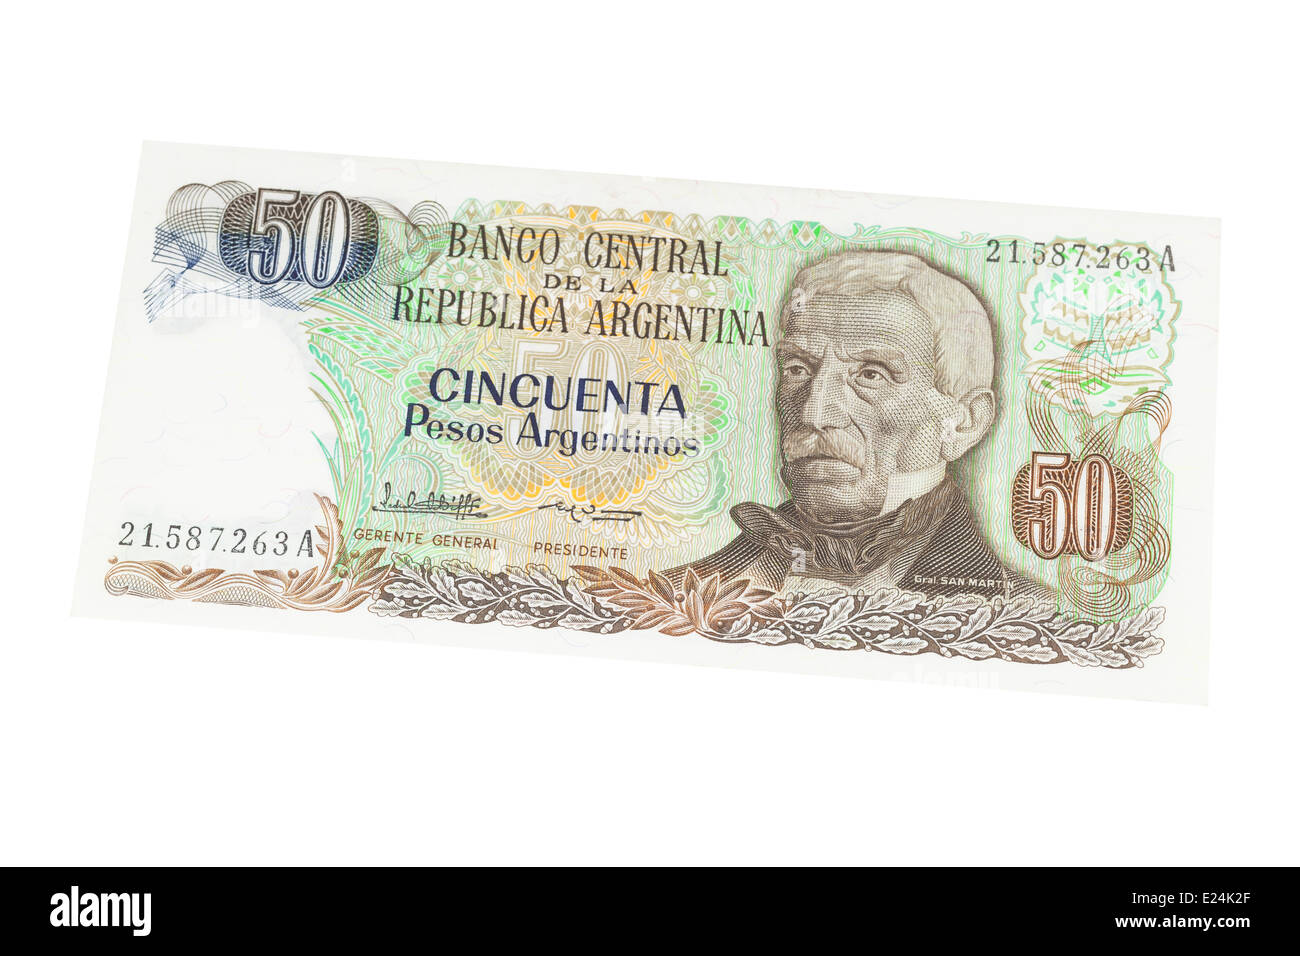 Argentinian fifty peso banknote on a white background - Stock Image